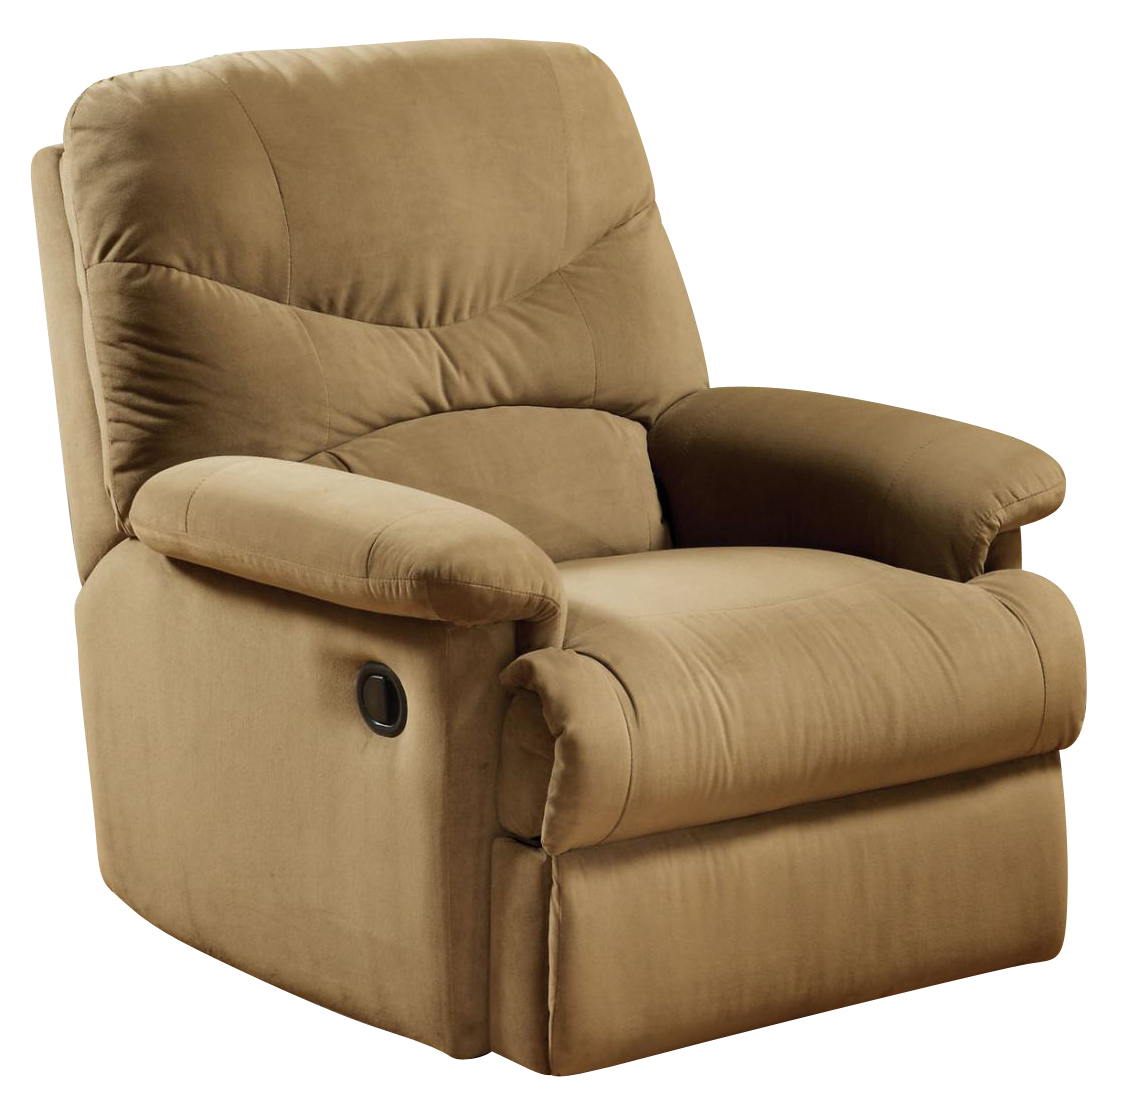 Acme Arcadia Microfiber Recliner In Light Brown 00627